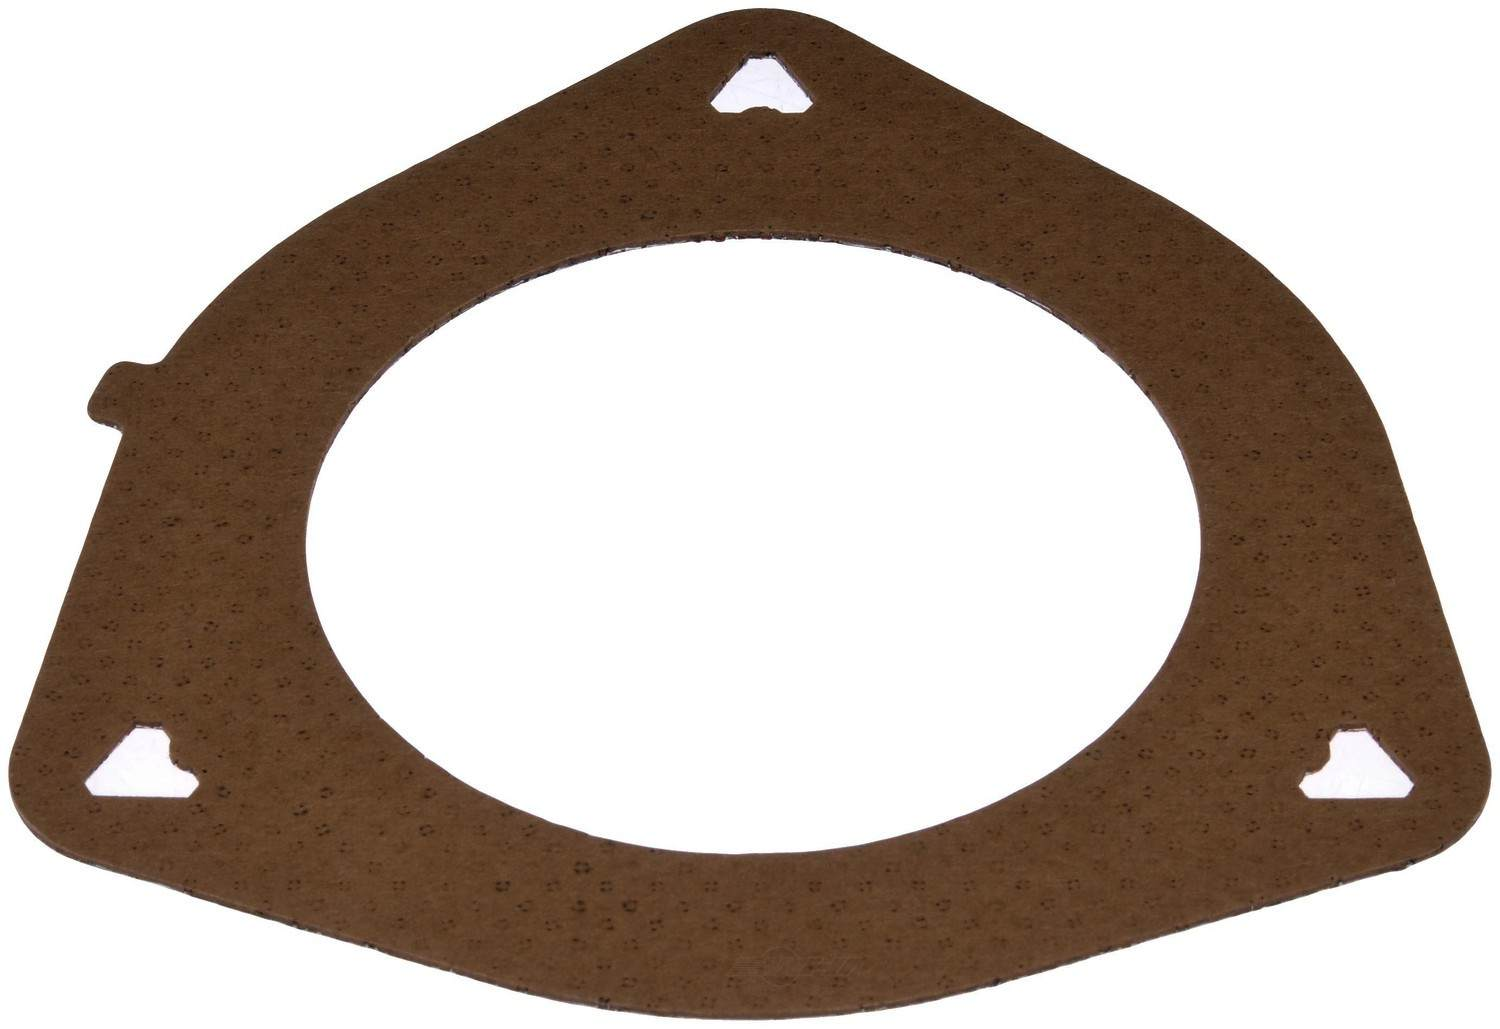 DORMAN - HD SOLUTIONS - Diesel Particulate Filter (DPF) Gasket - DHD 674-9006